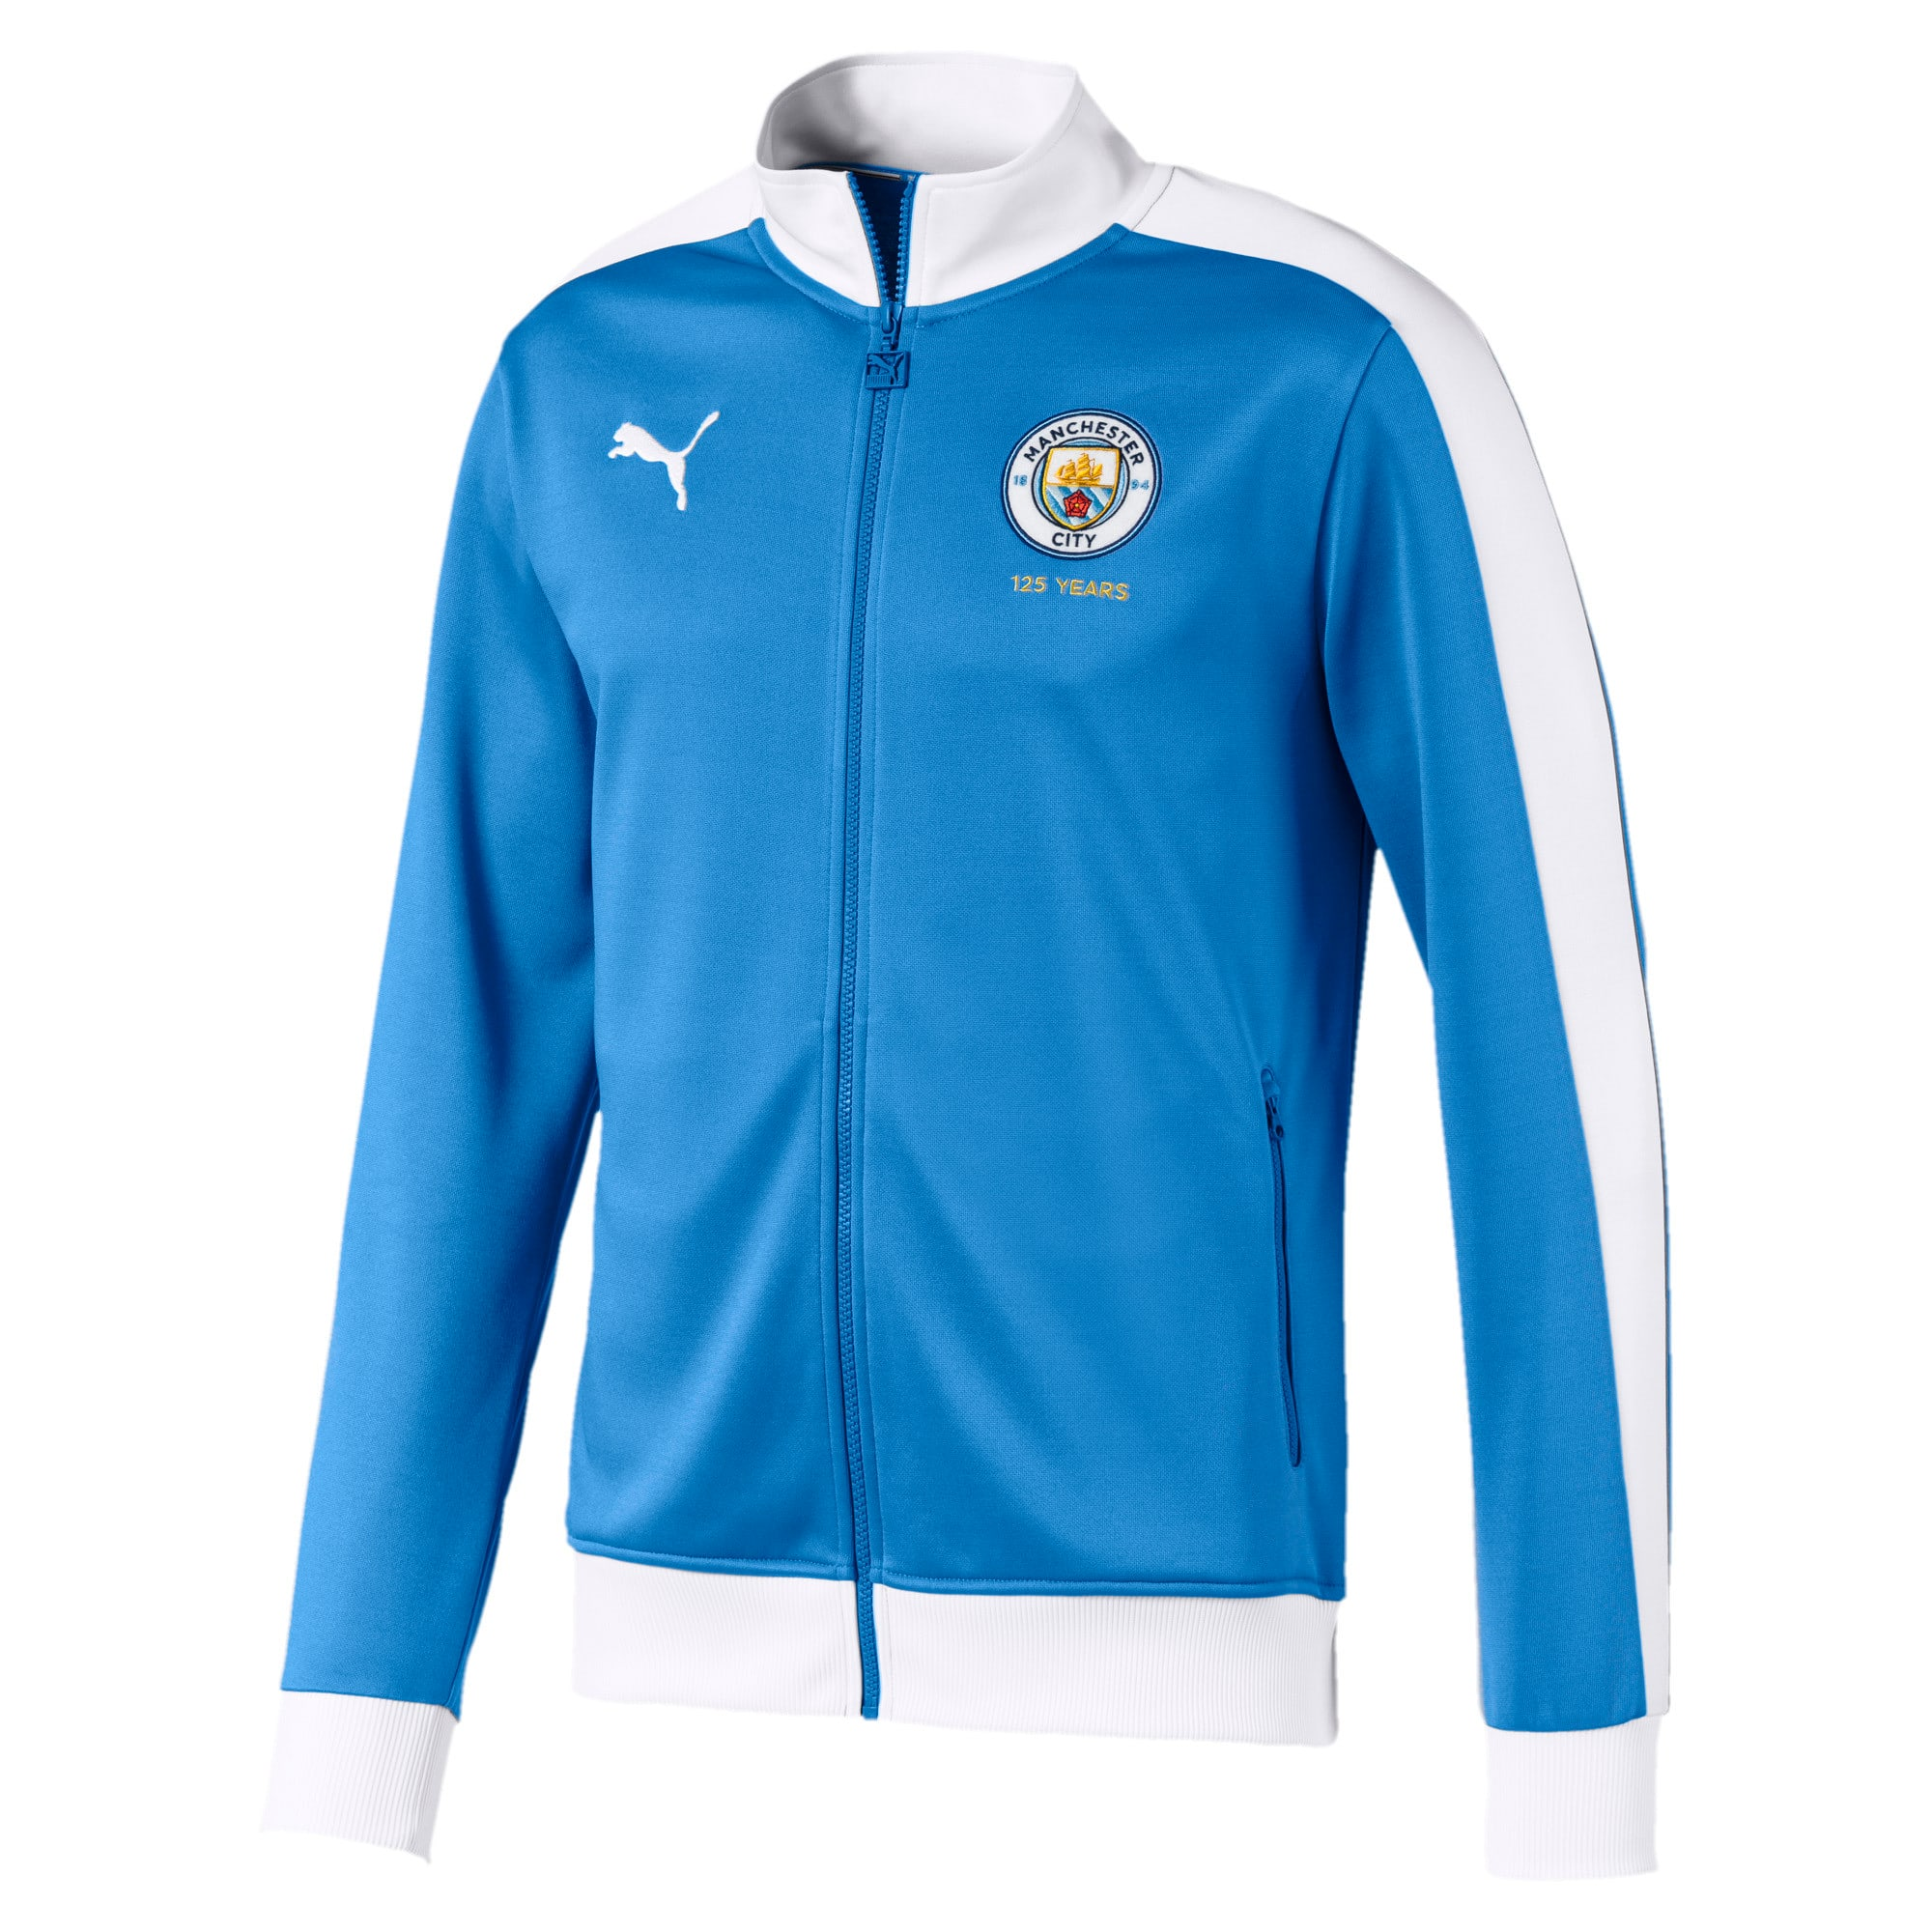 Thumbnail 1 of Manchester City T7 Men's 125 Year Anniversary Track Jacket, Marina-Puma White, medium